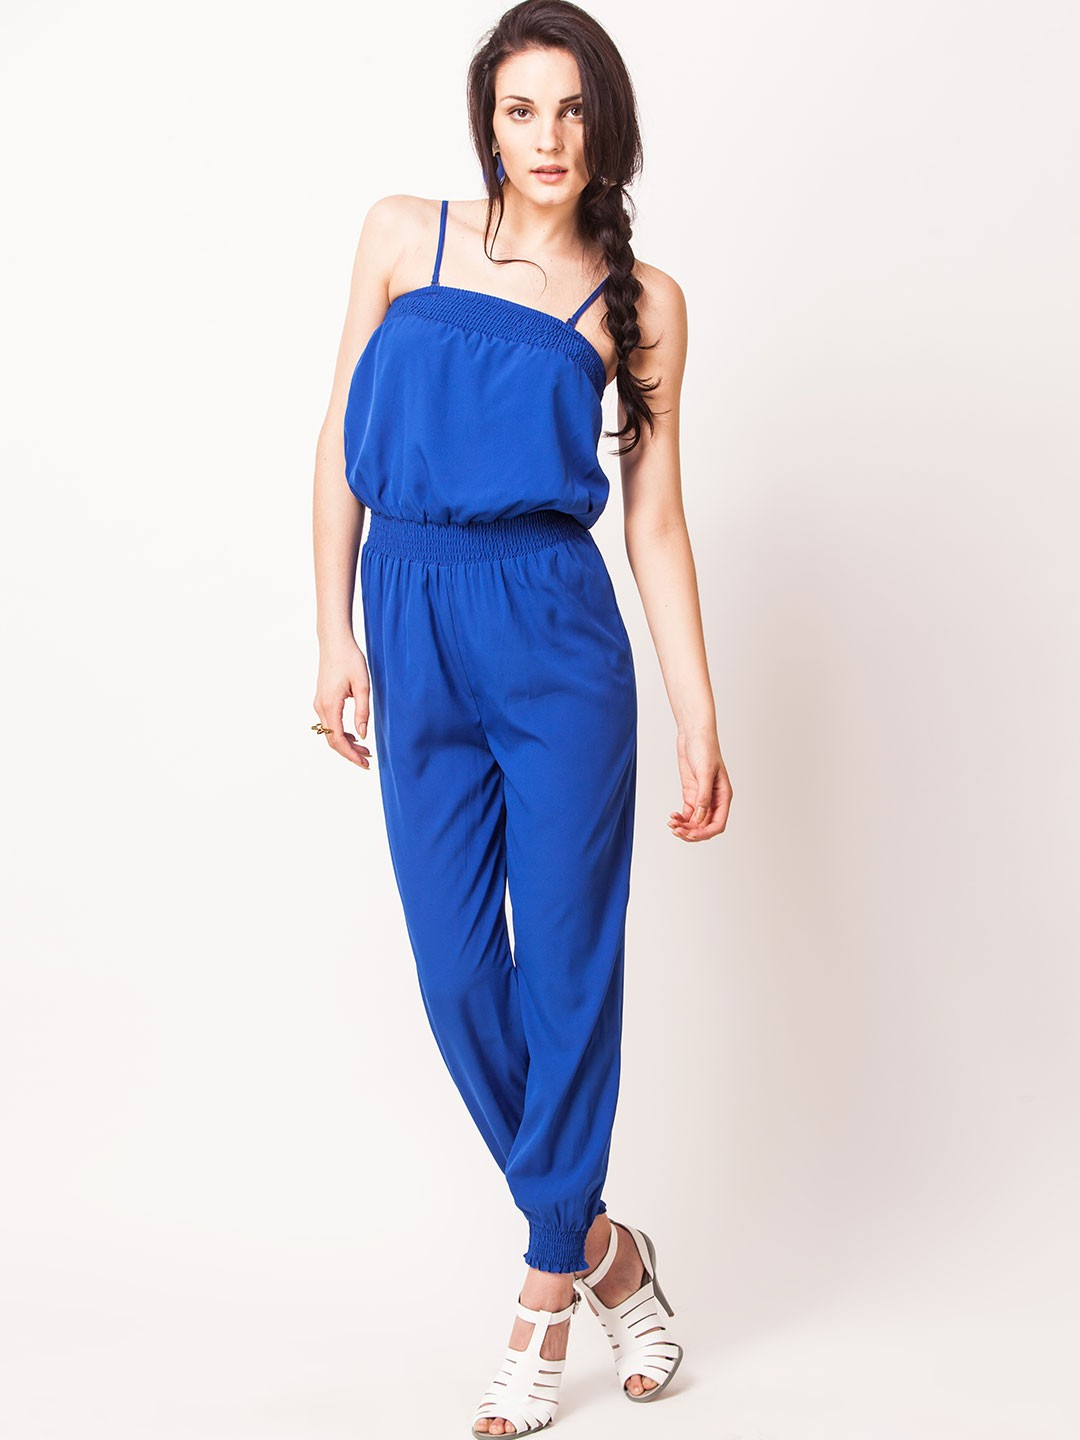 Wonderful  Layer Jumpsuit For Women  Women39s Multi Jumpsuits Online In India